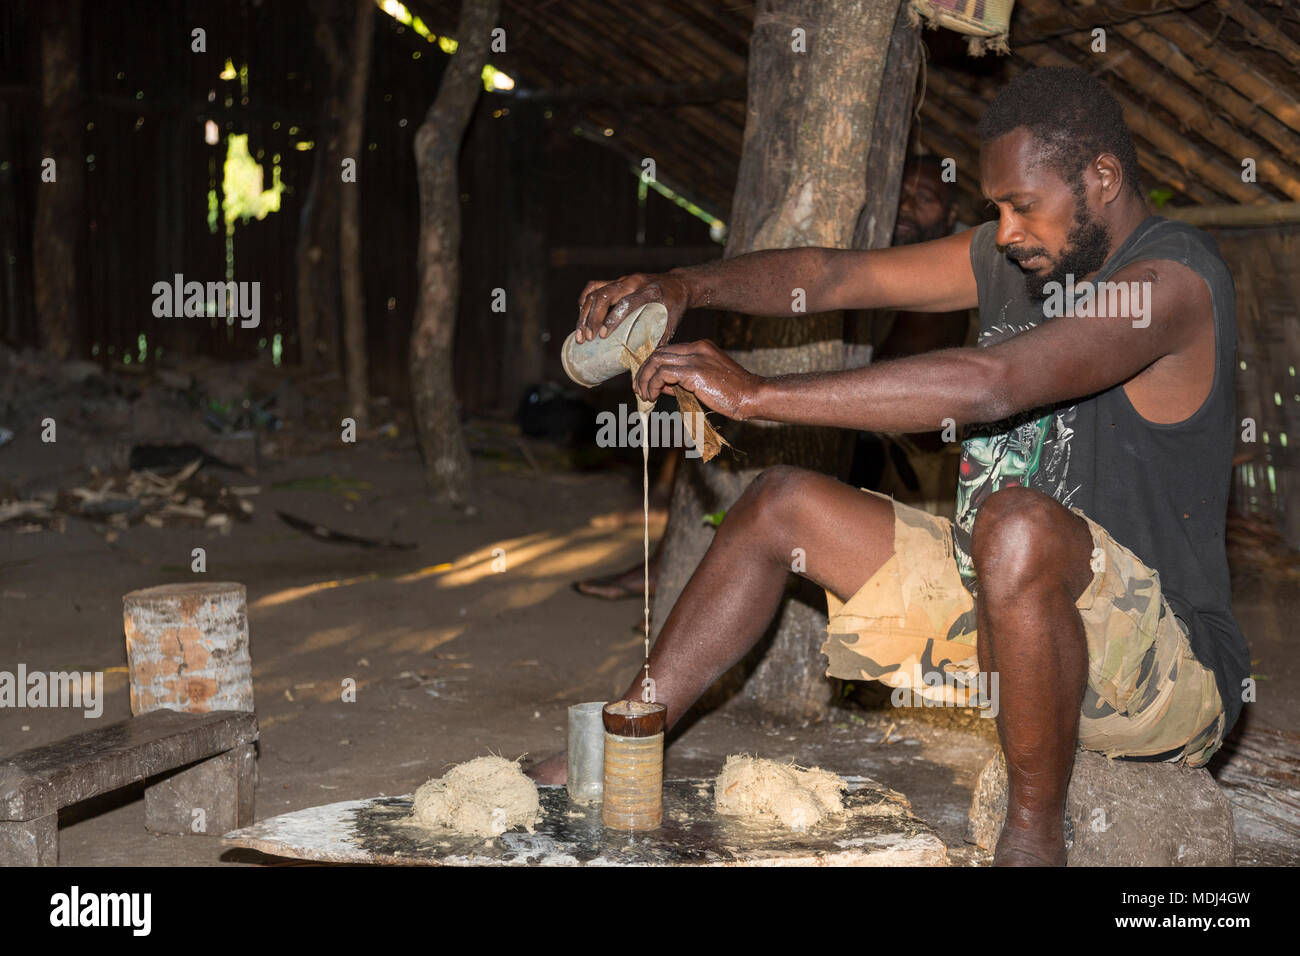 Pentecost, Republic of Vanuatu, July 21, 2014: Indigenous men participate in traditional Kava Ceremony. The consumption of the drink is a form of welc - Stock Image